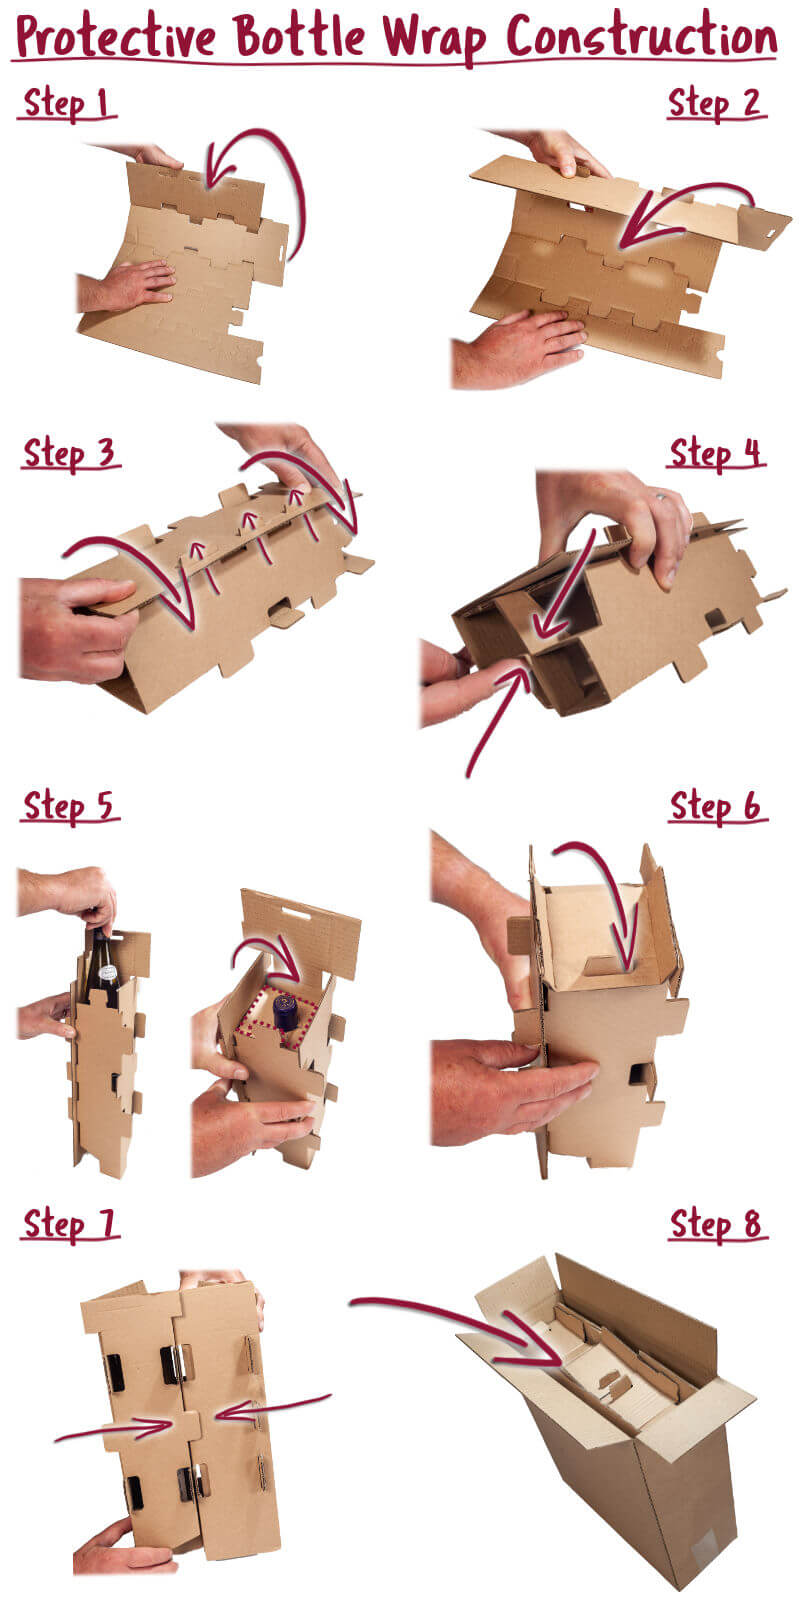 Visual Instructions on how to fold the included protective bottle wrap inserts